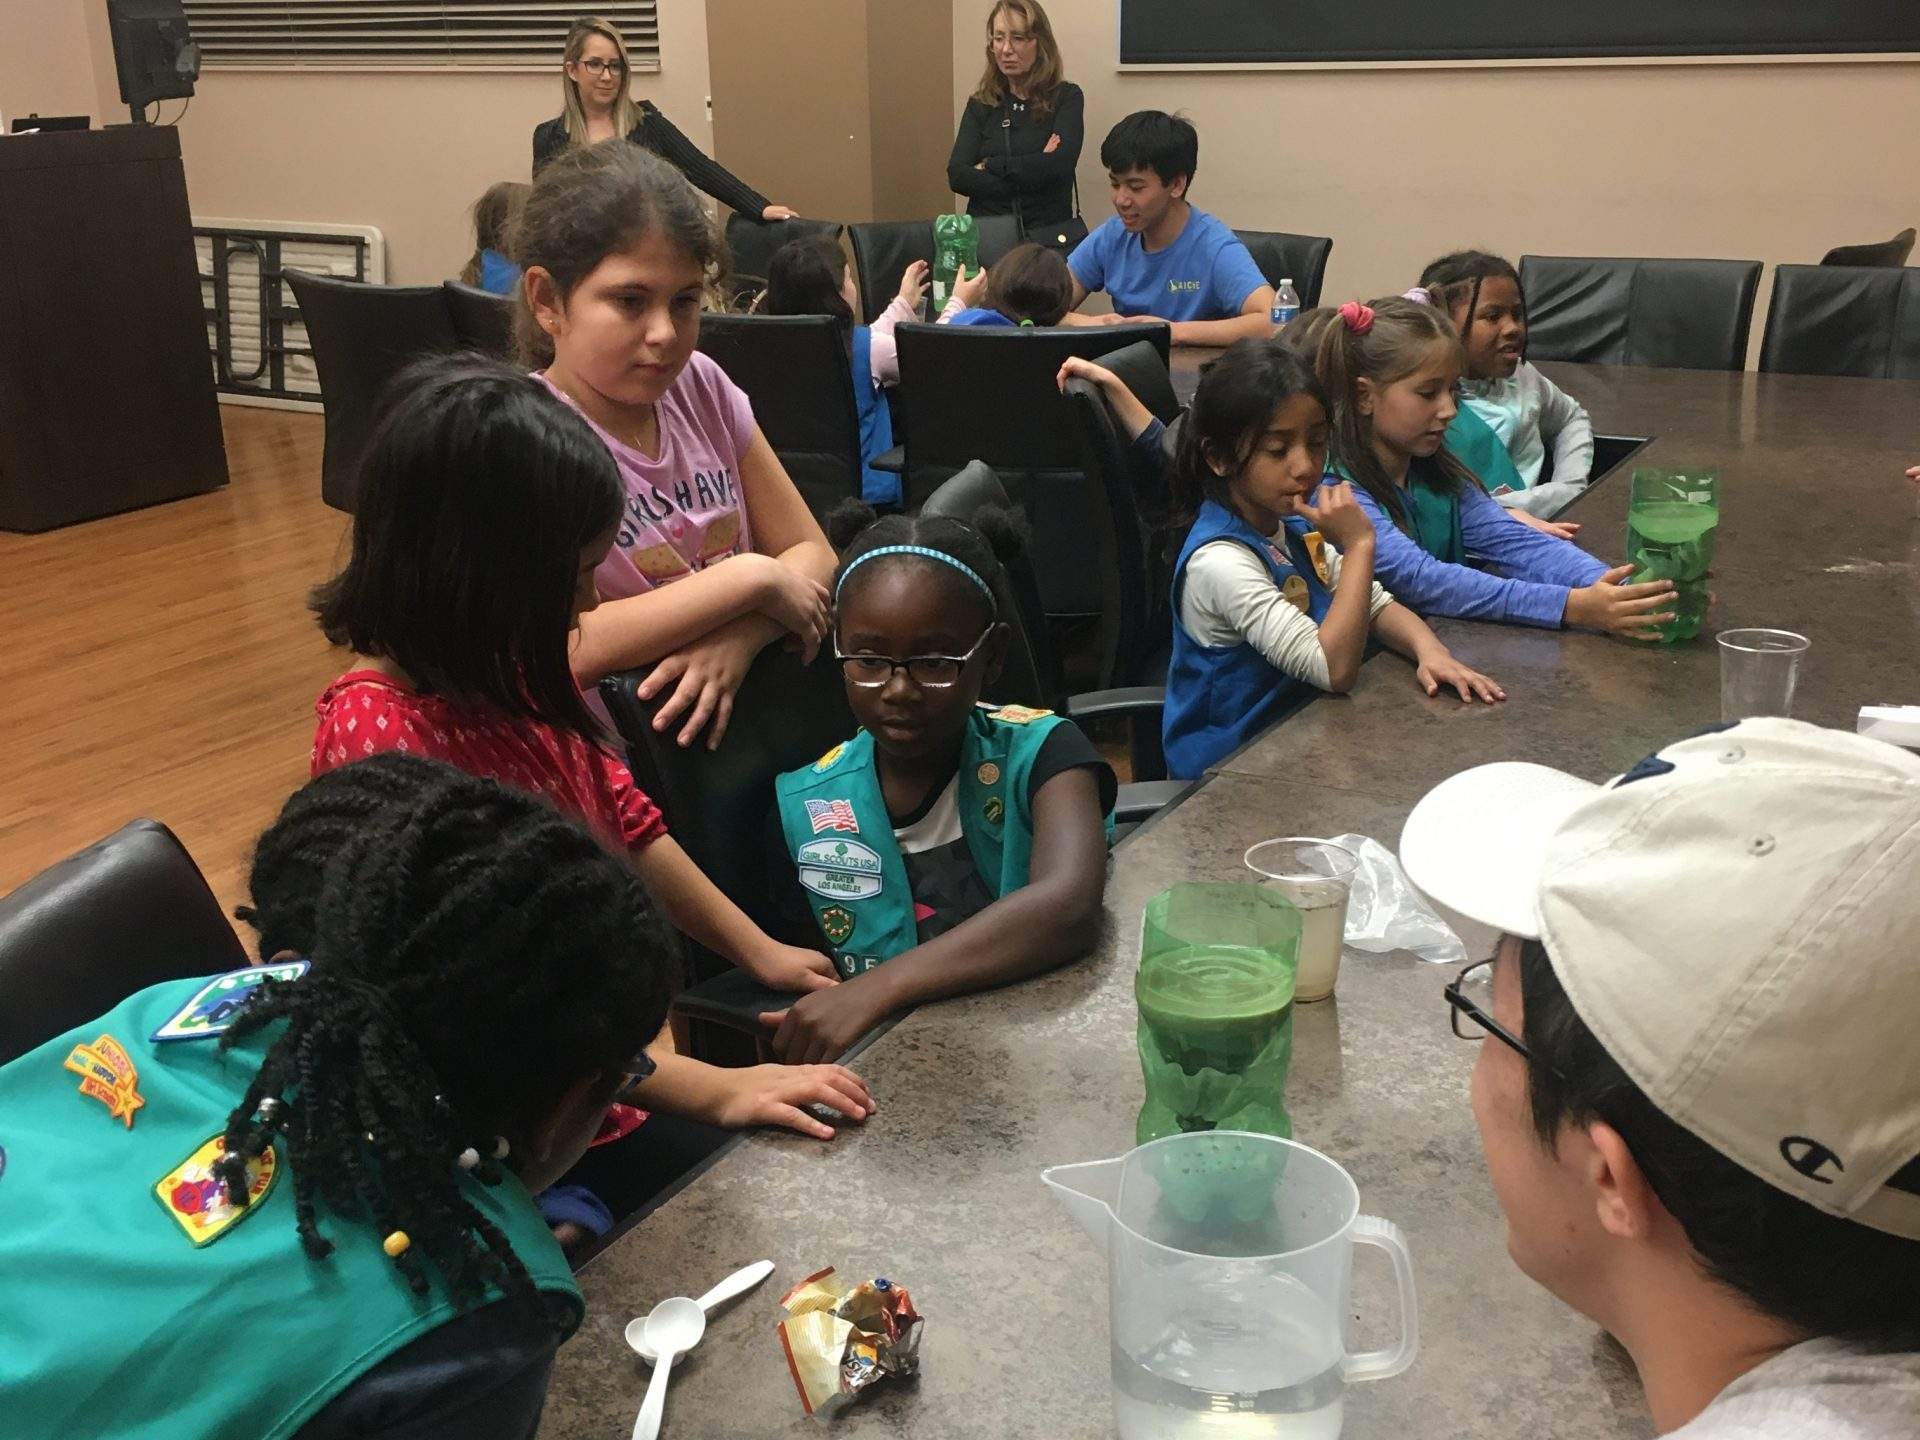 In November, we helped girls 5th grade and under earn their engineering fun badge in a fun afternoon of STEM activities with the troop from the UCLA Lab School.